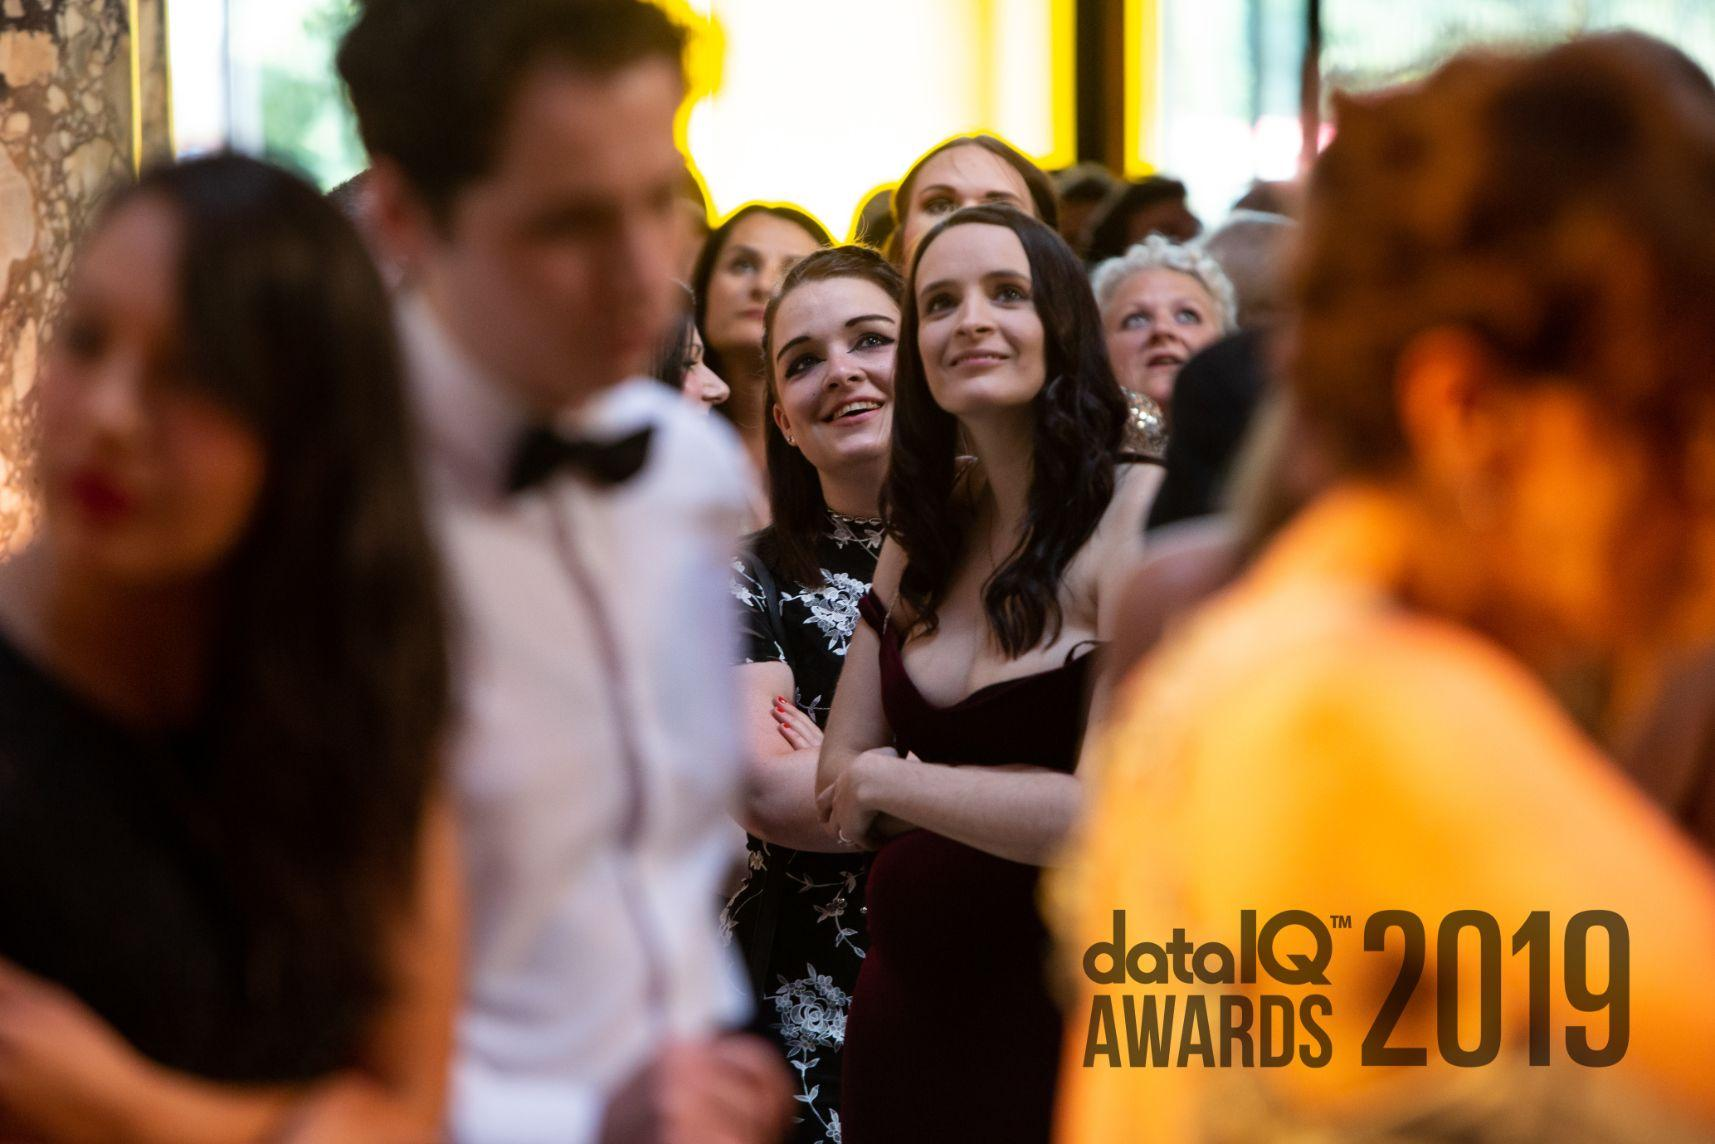 Awards 2019 Image 106